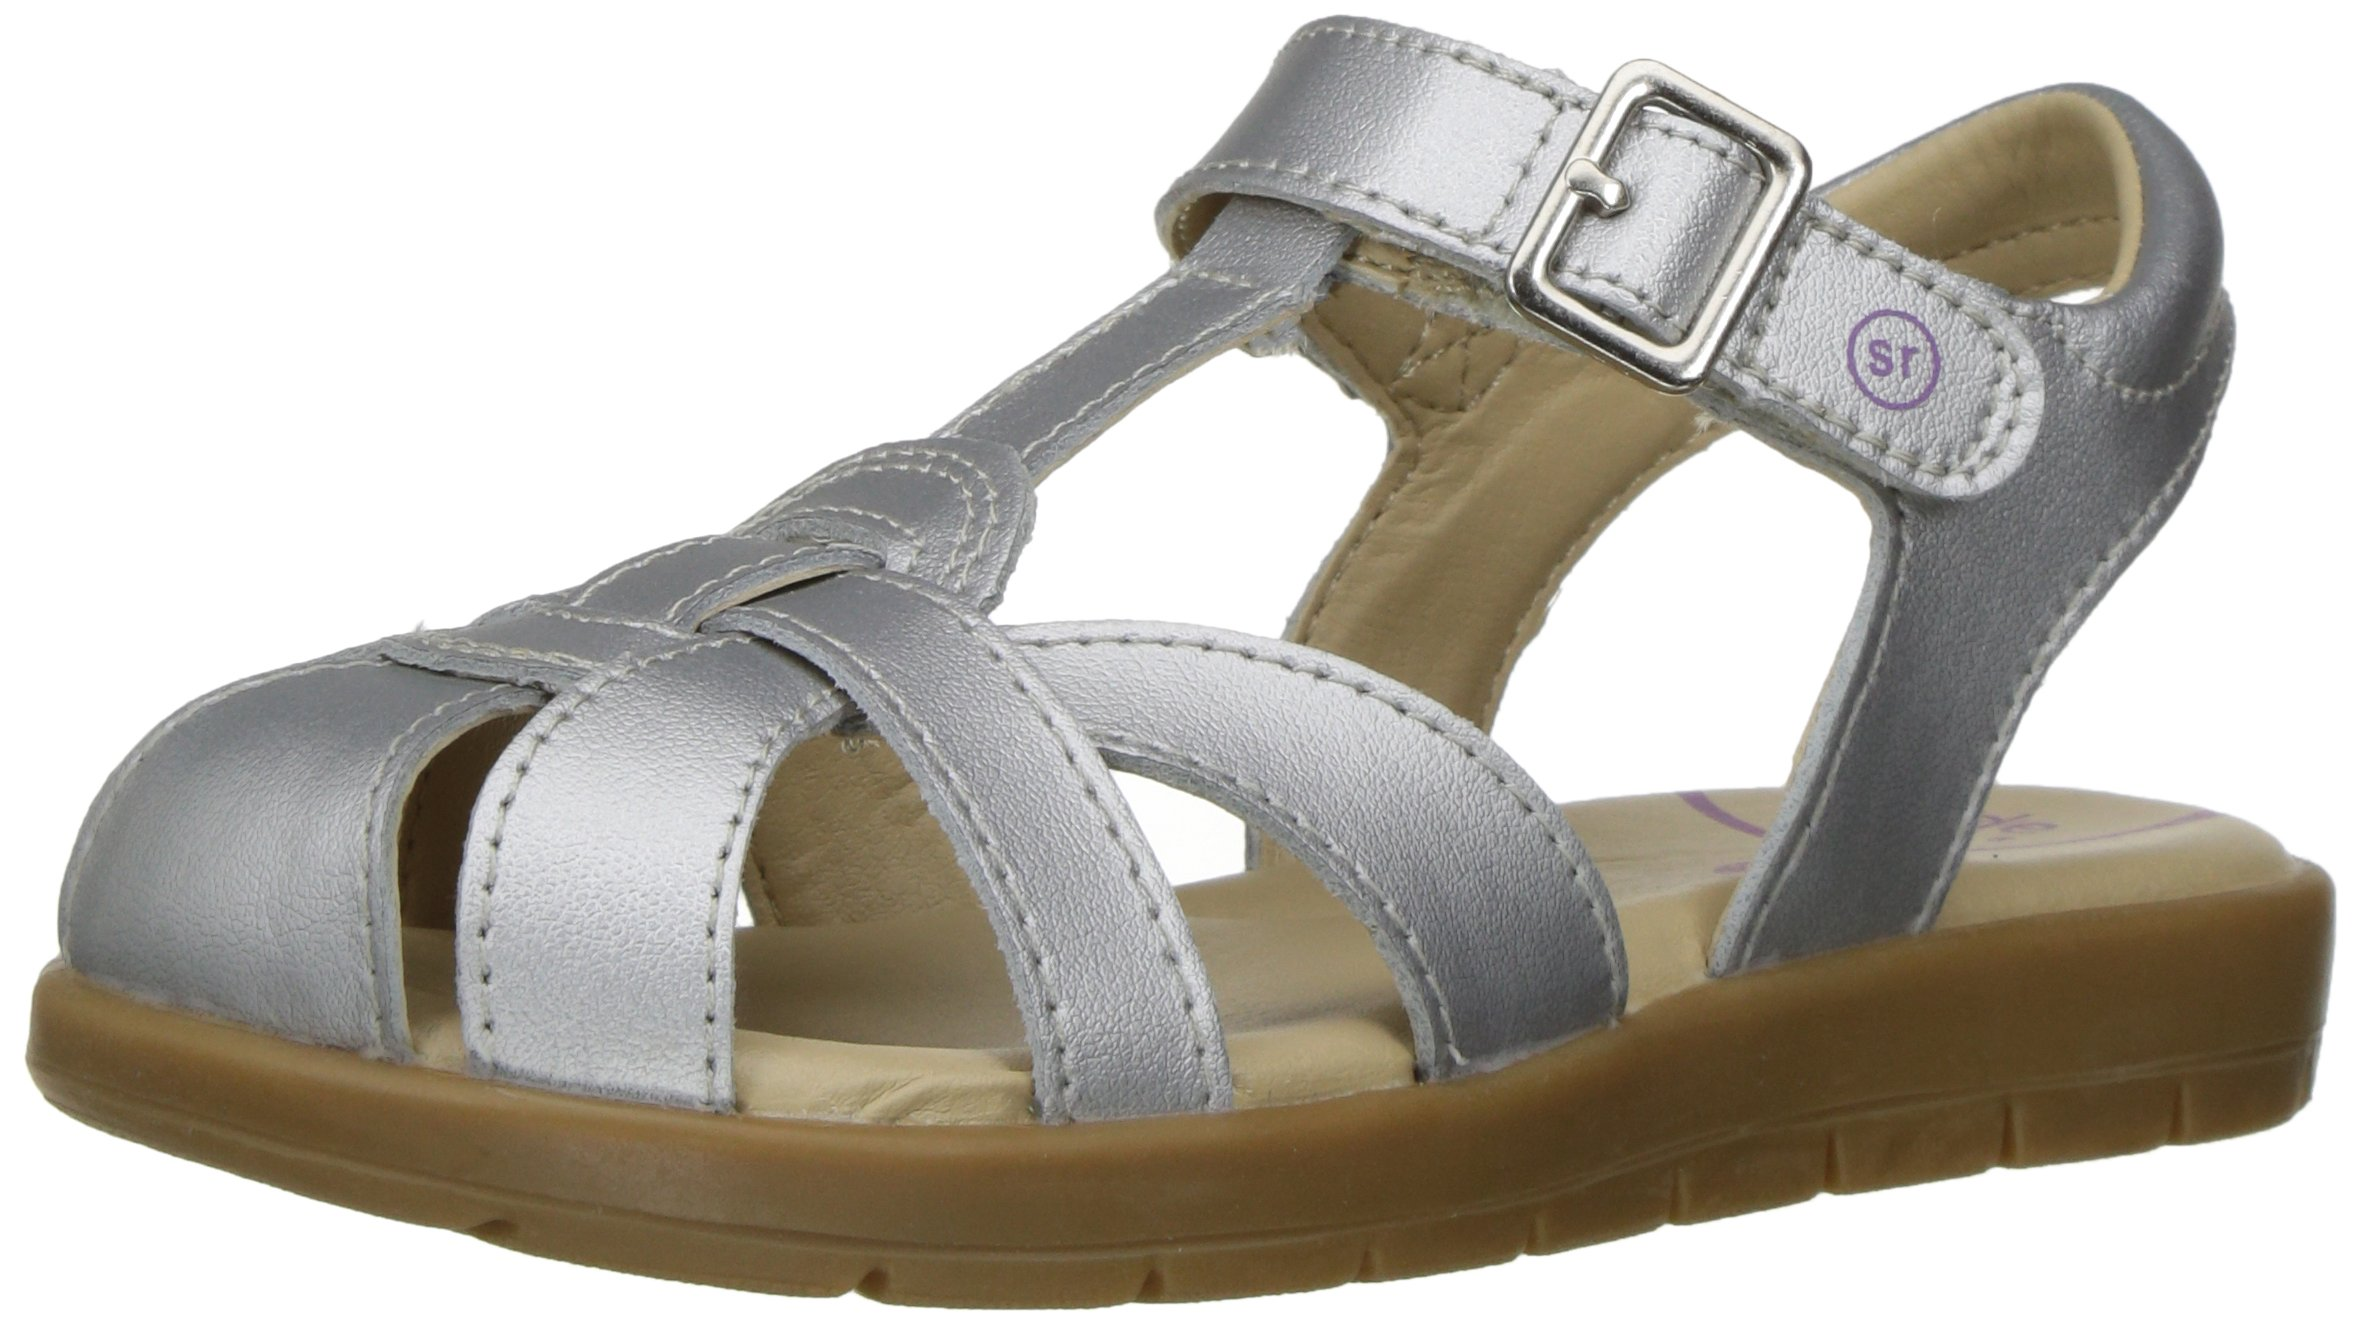 82d45aa31374 Stride Rite Summer Time Sandal (Toddler Little Kid) product image